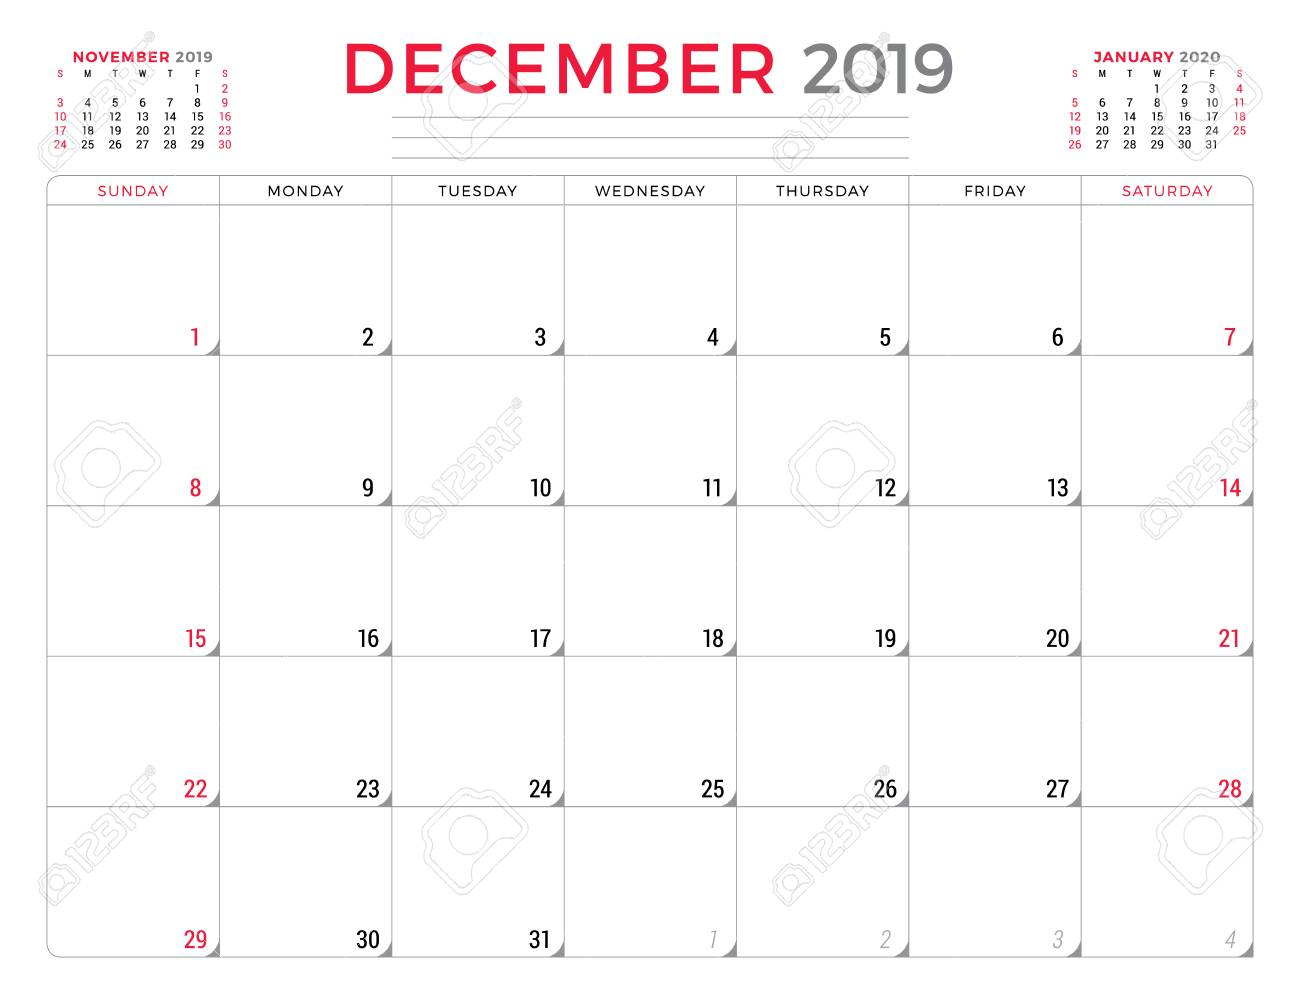 December 2019. Calendar Planner Stationery Design Template. Vector  Illustration. Week Starts On Sunday with Monday To Friday Planner